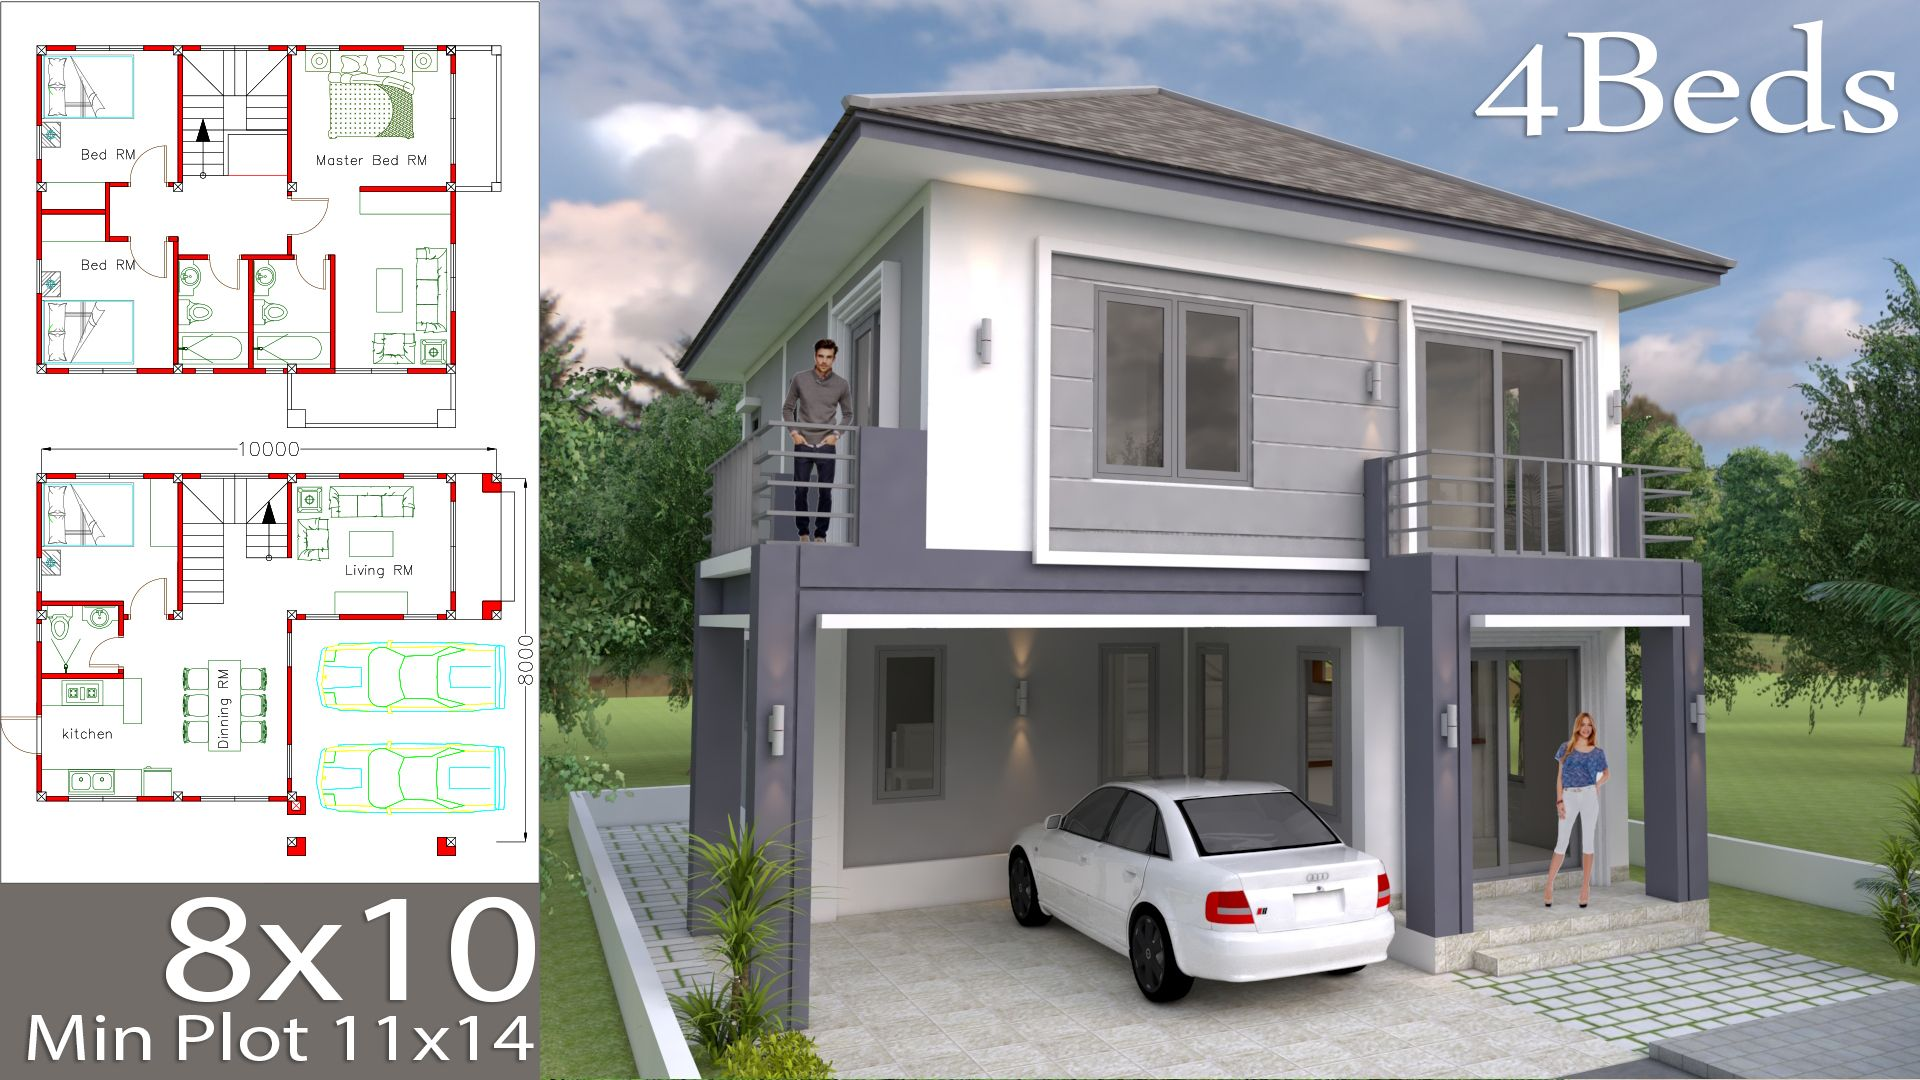 House Plans 8x10m With 4 Bedrooms This Villa Is Modeling By Sam Architect With Two Stories Level In 2020 Architectural House Plans Home Design Plan Small House Design